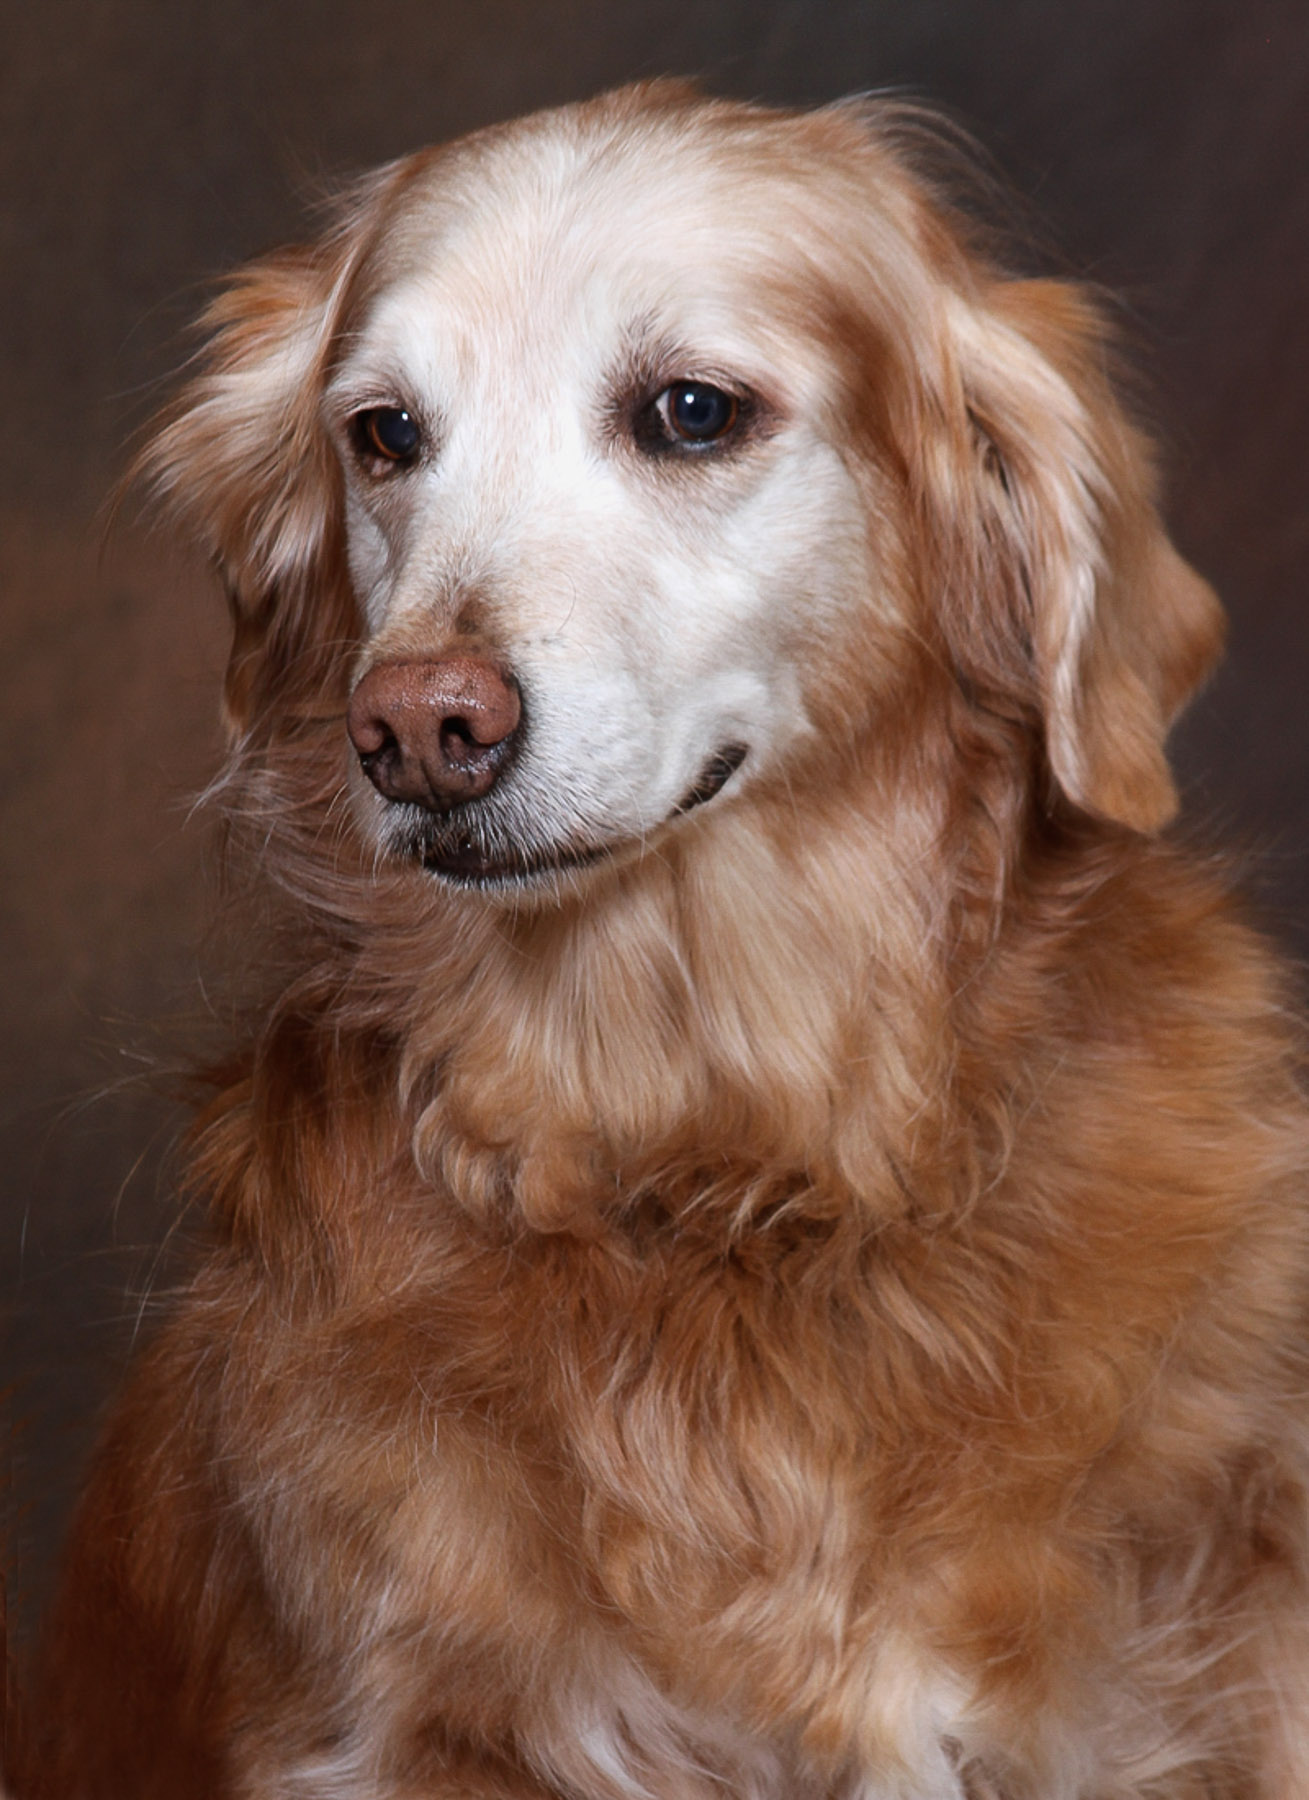 patrick-nau-minneapolis-pet-photography-025